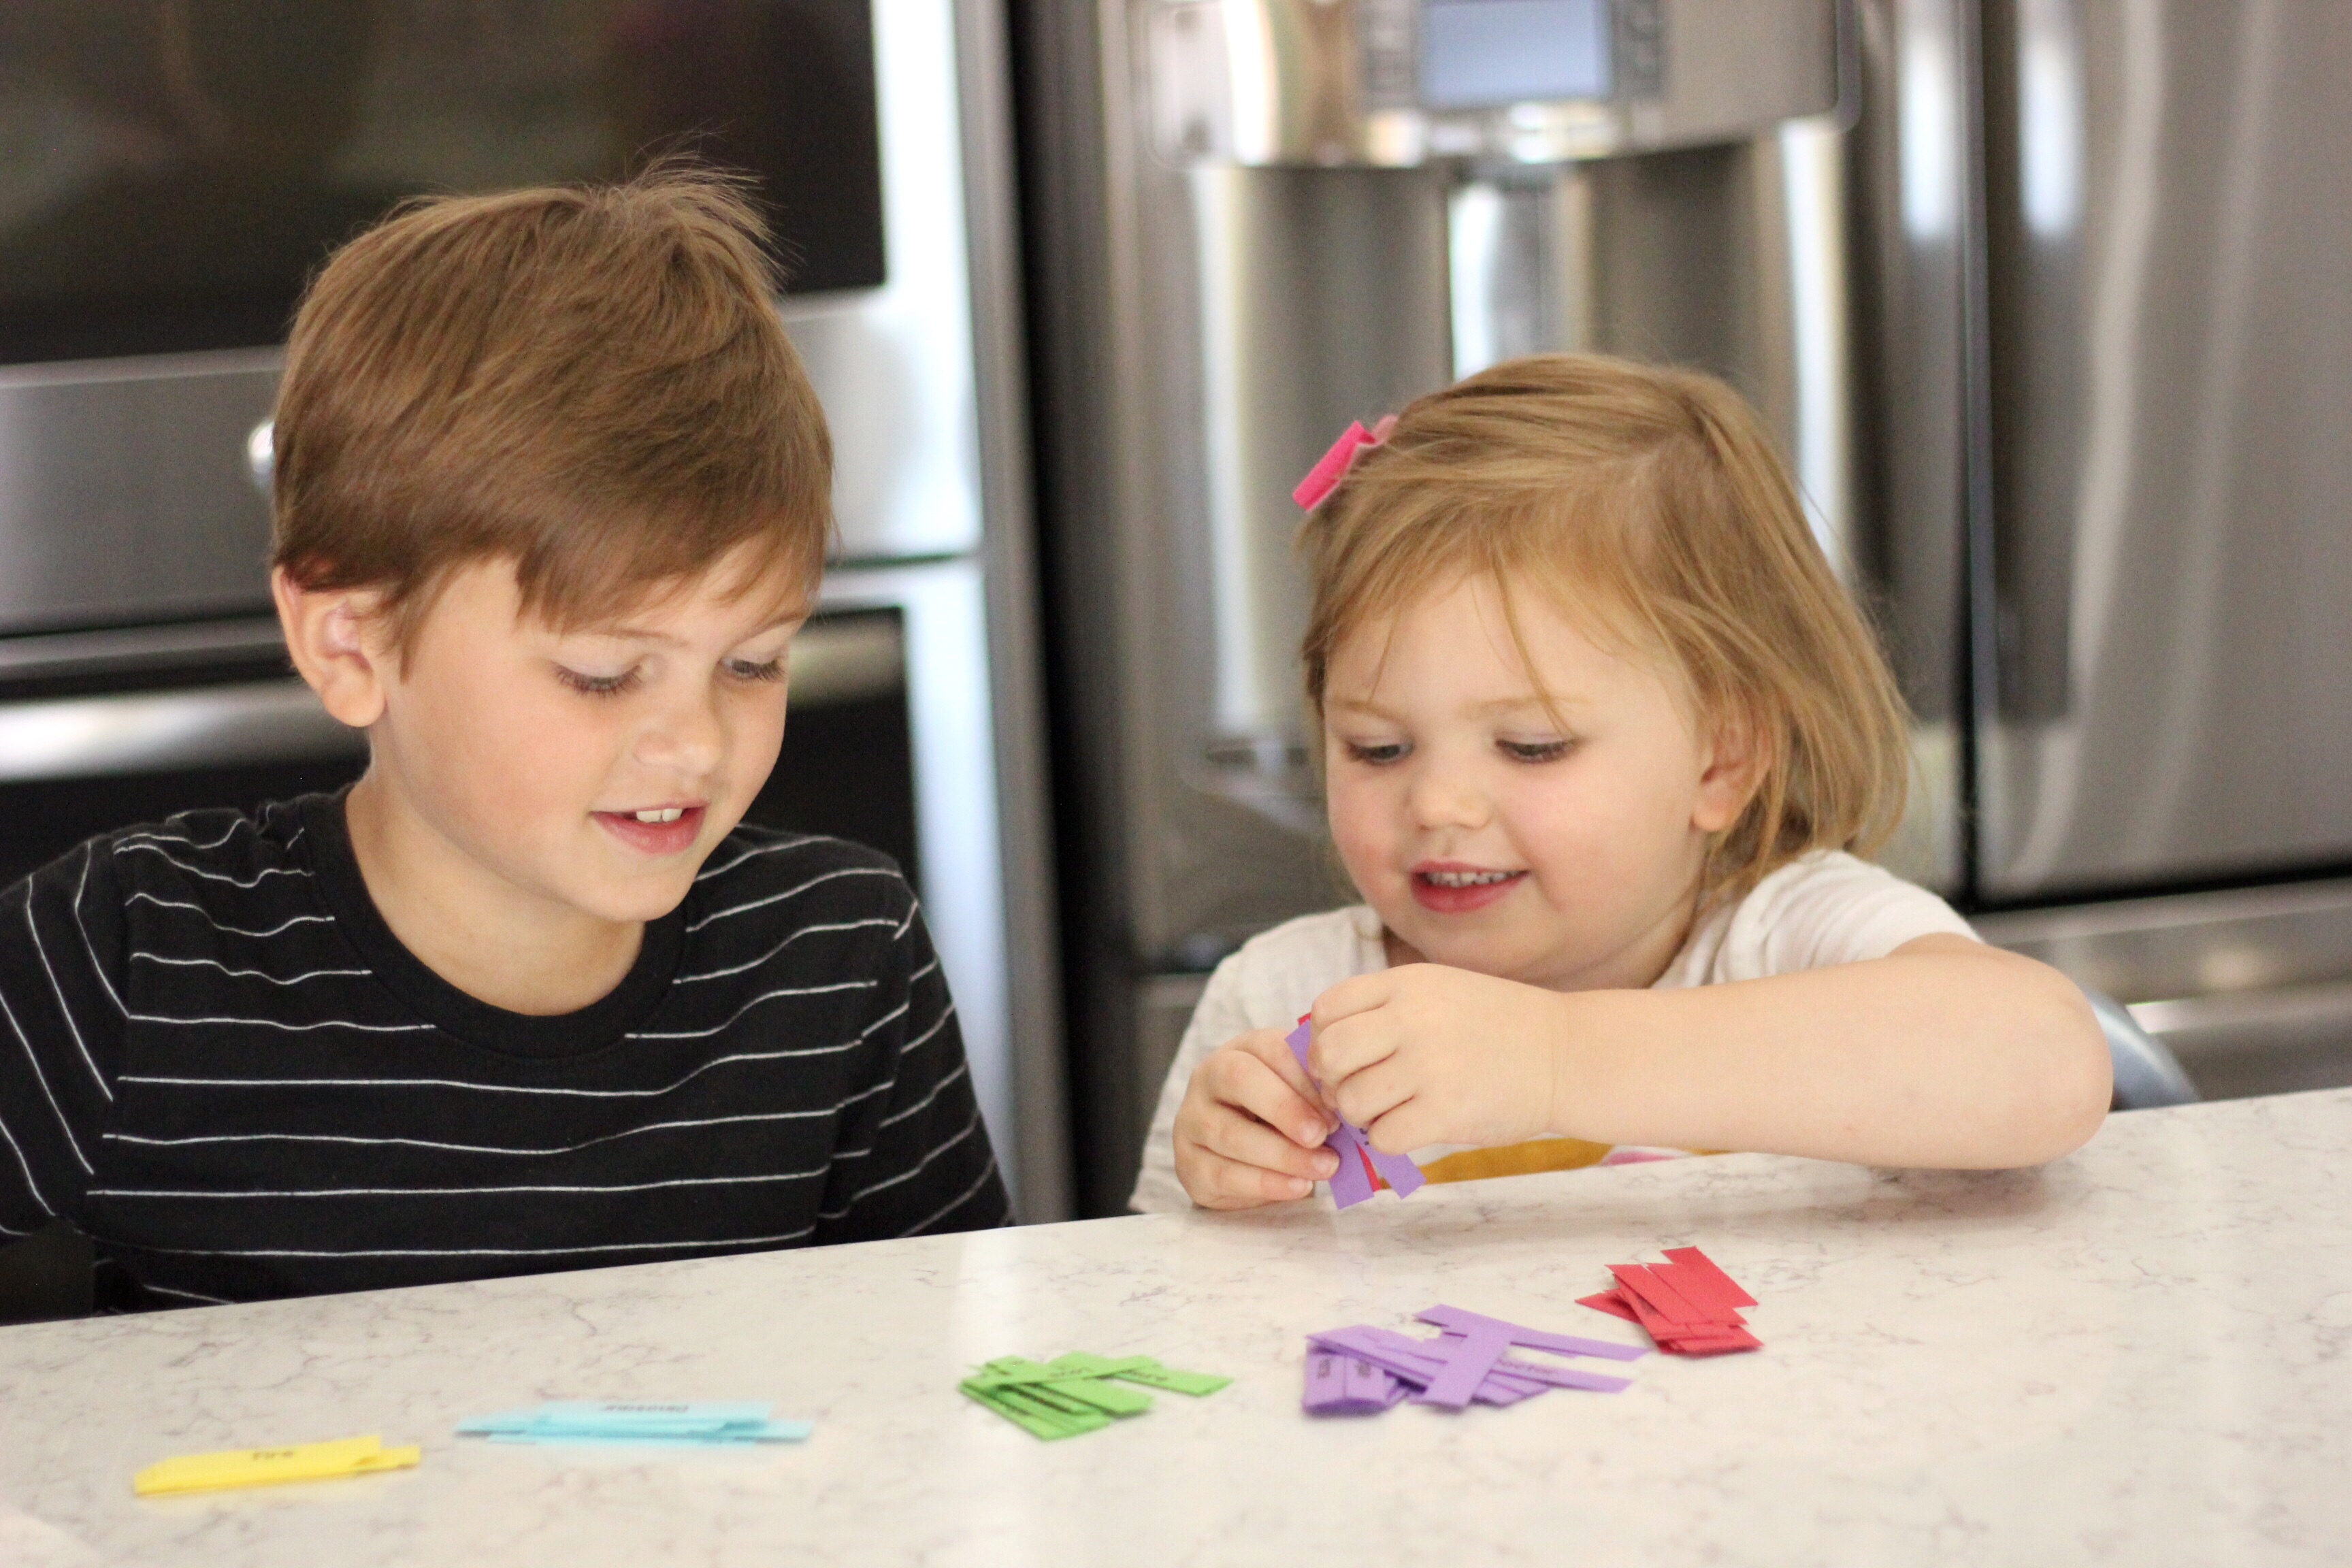 A girl and boy happily playing a game together